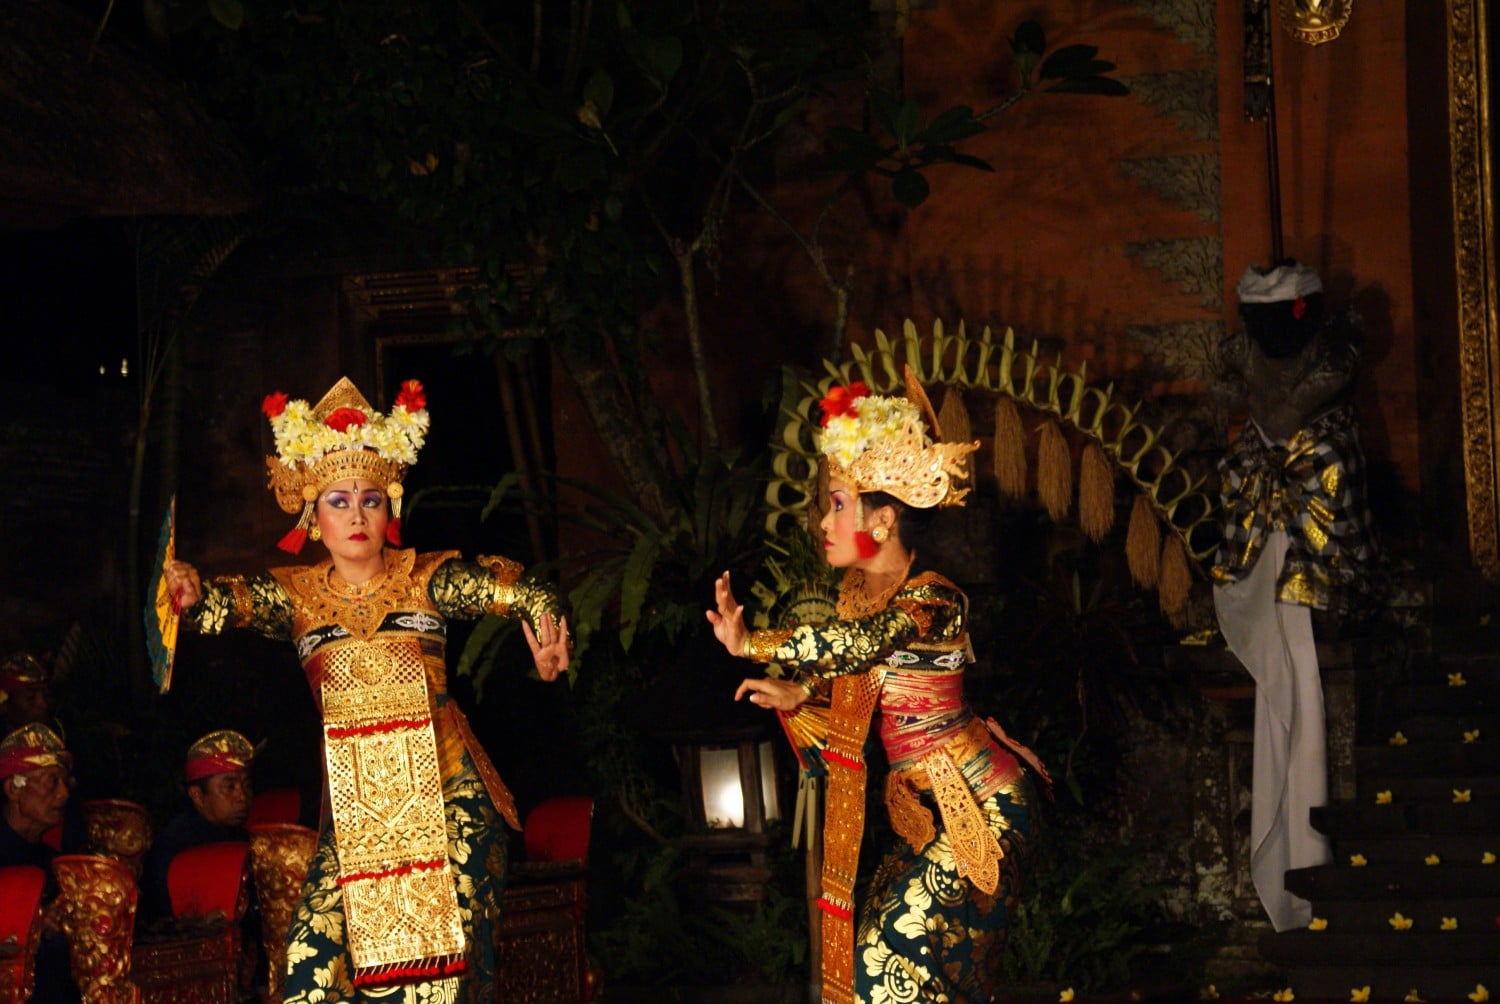 Expressive movements as part of a Balinese dance